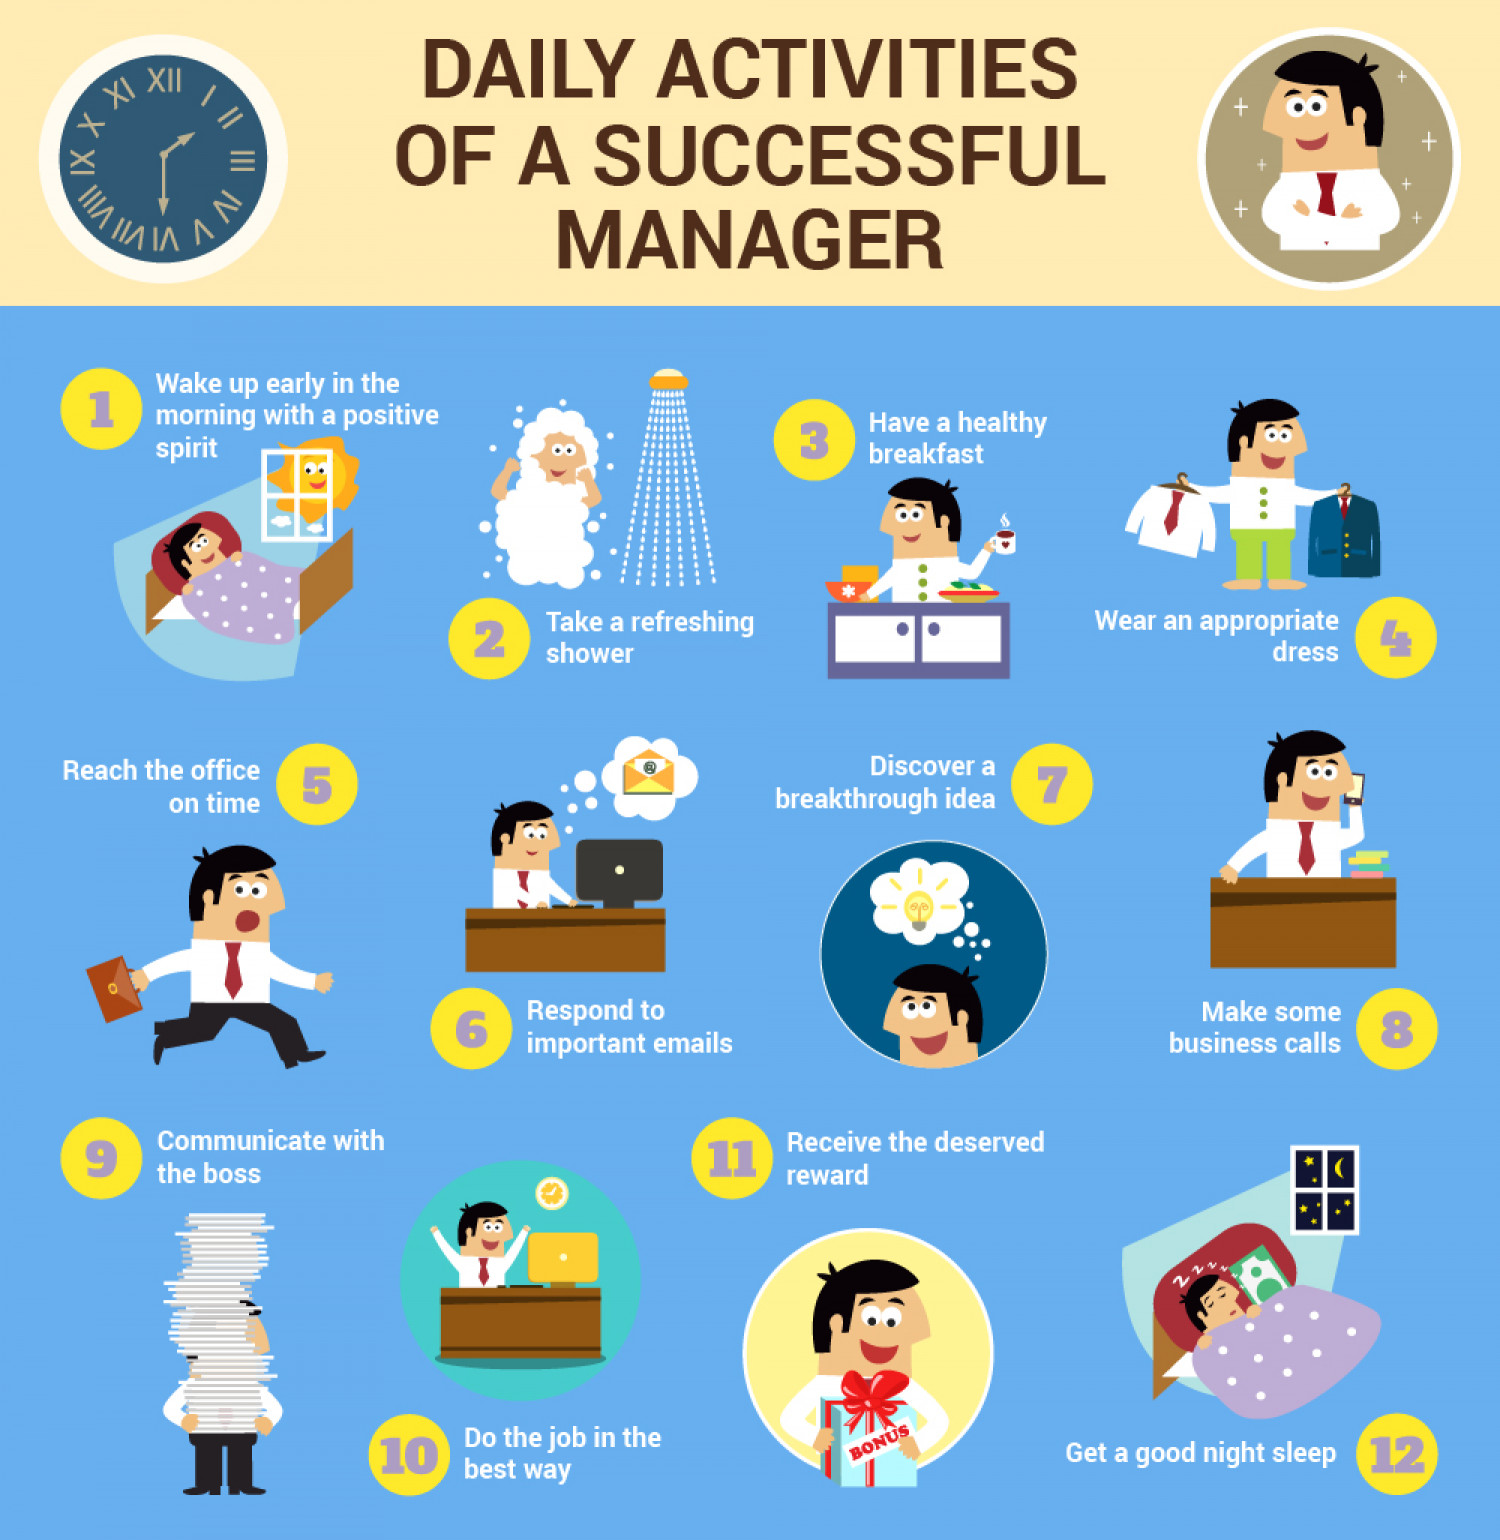 Daily Activities Of A Successful Manager Visually